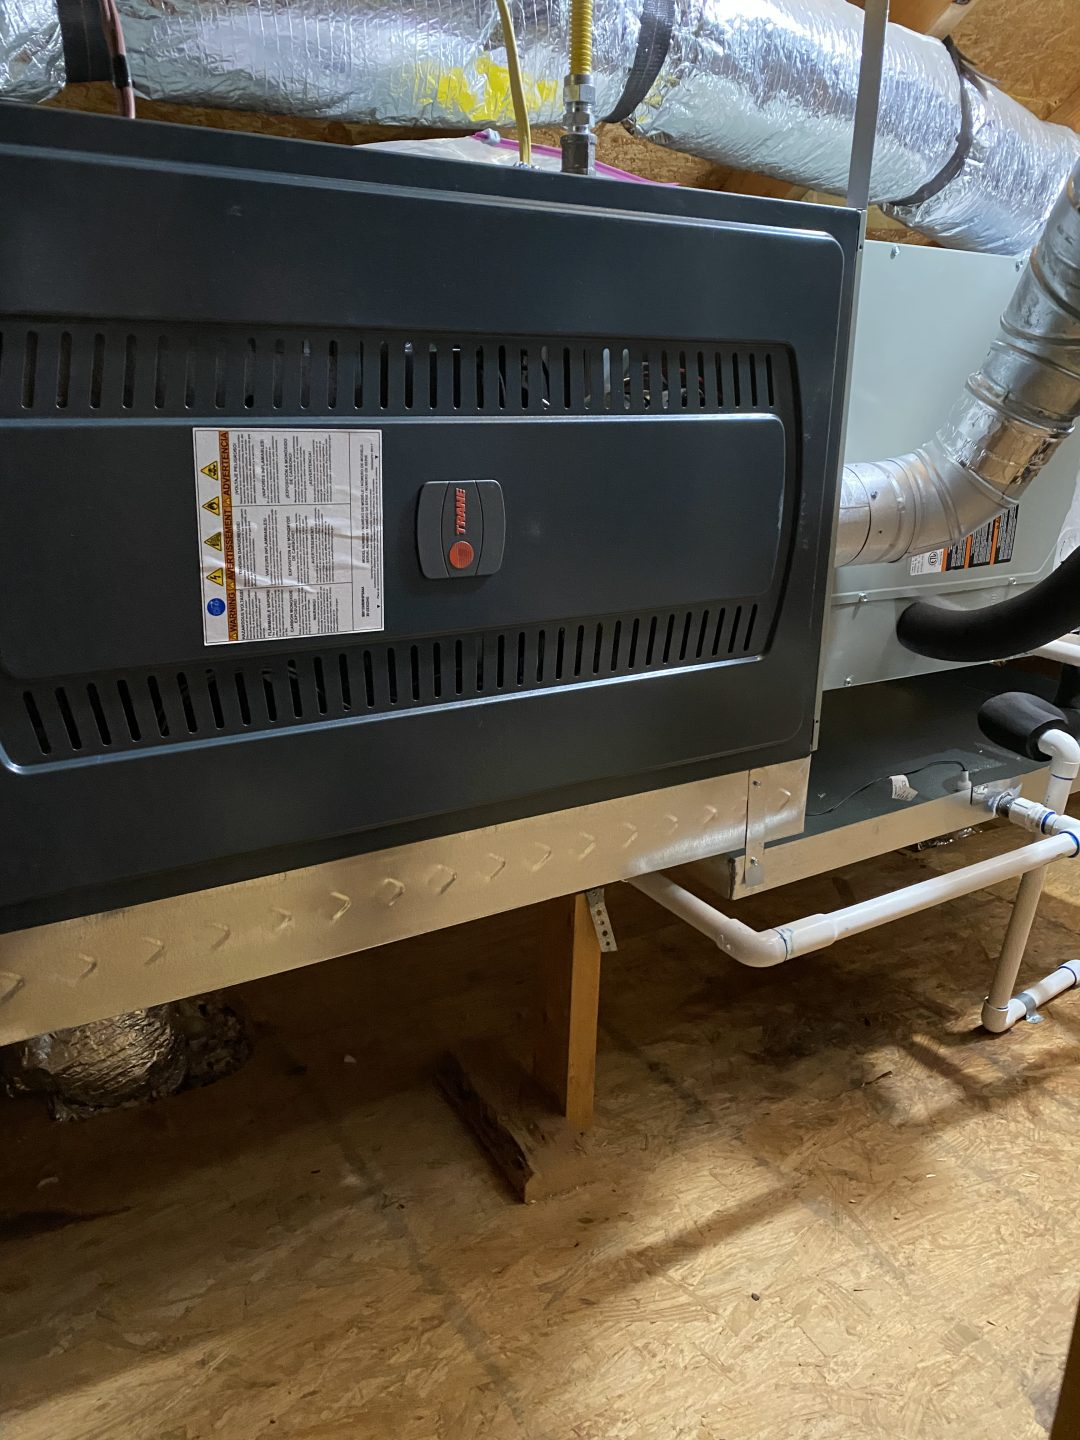 4 ton air conditioning XR14 with 4-ton gas furnace S8X1. TRANE Little Elm Texas 75068&